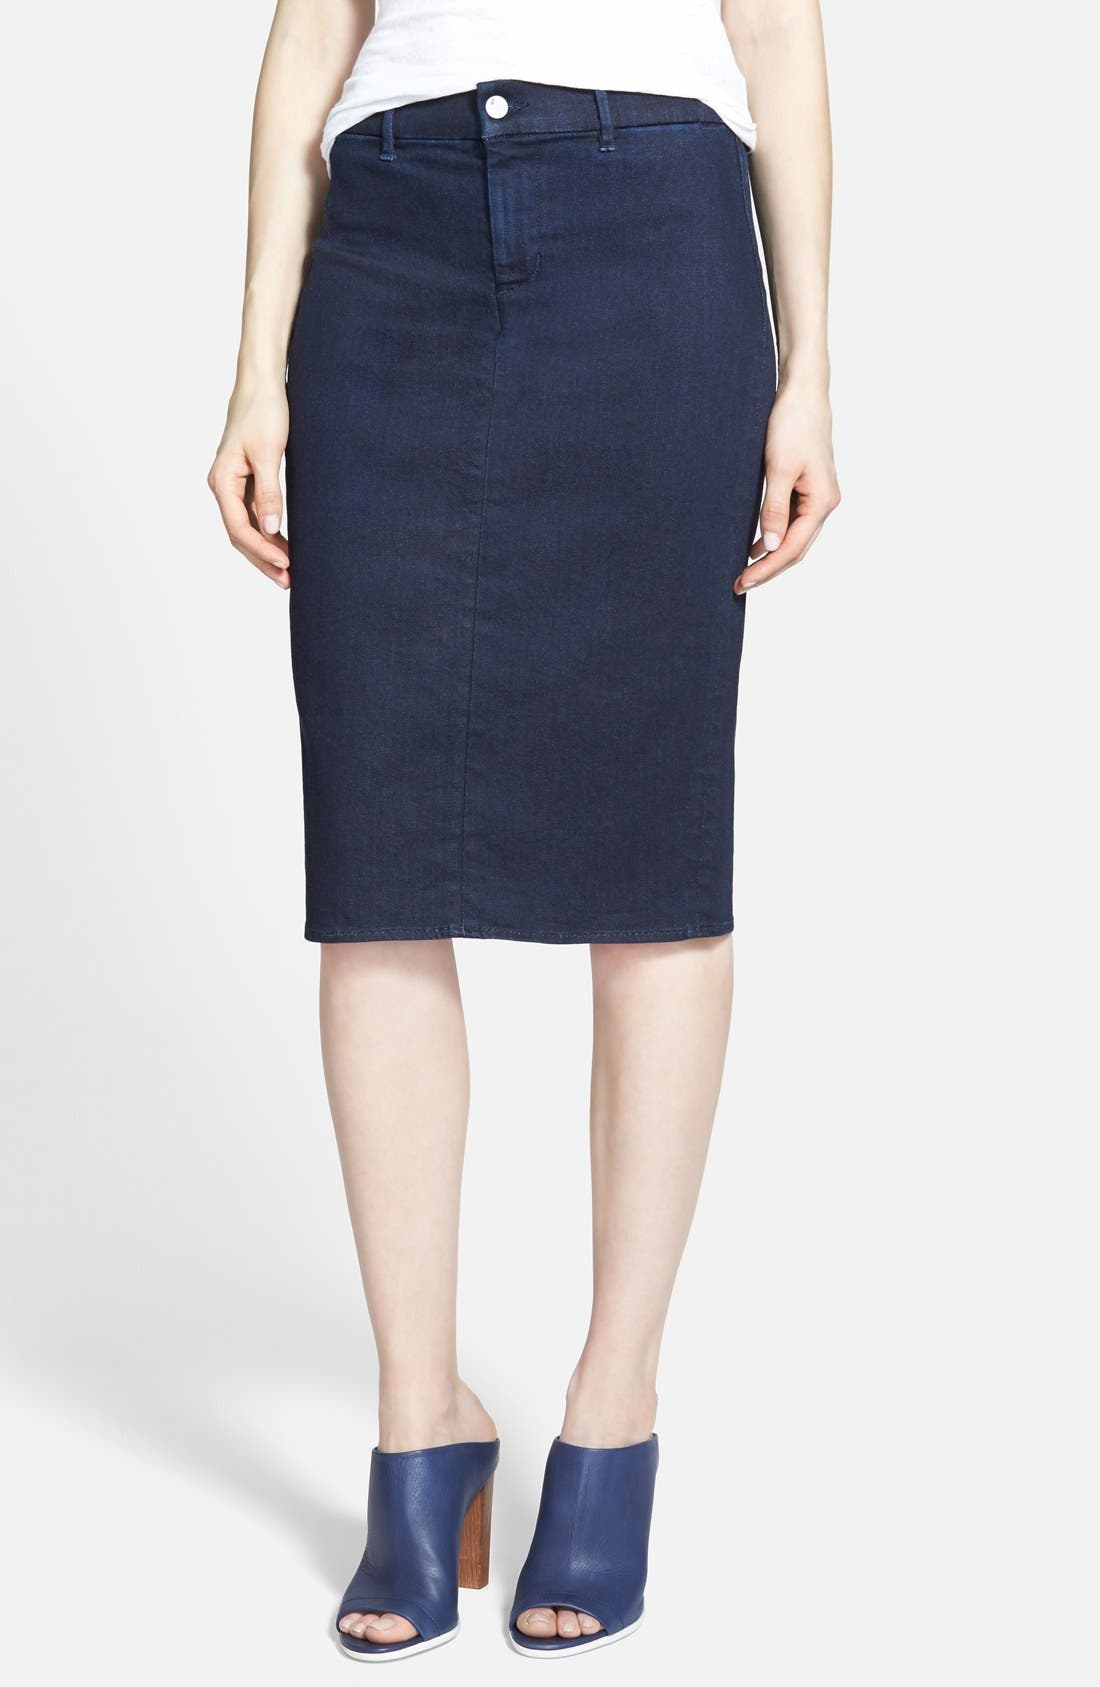 J BRAND 'Willa' High Rise Pencil Skirt, Main, color, 400